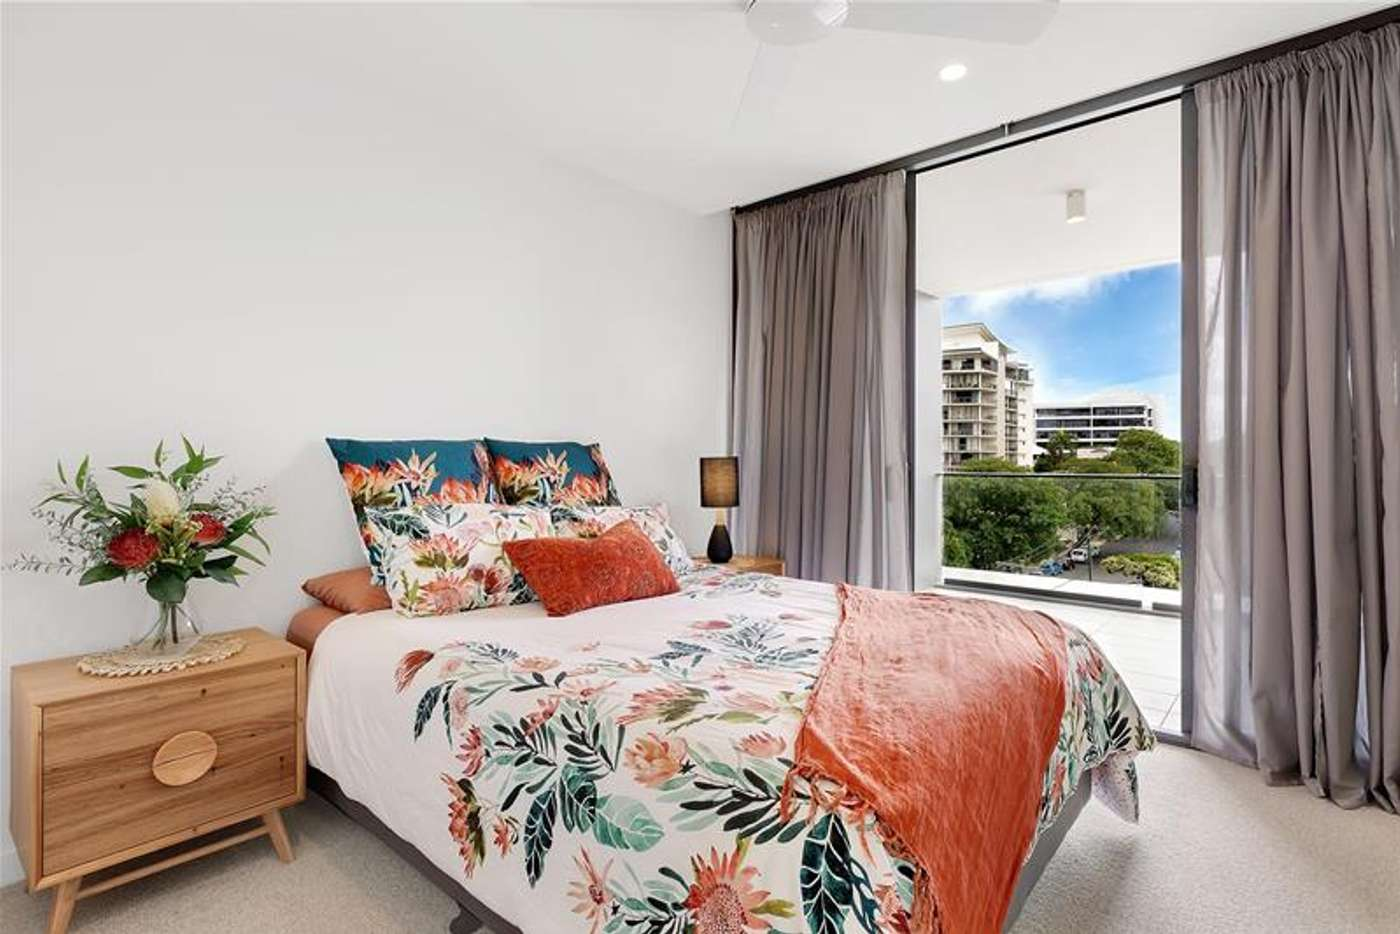 Seventh view of Homely apartment listing, 302/55 Railway Terrace, Milton QLD 4064